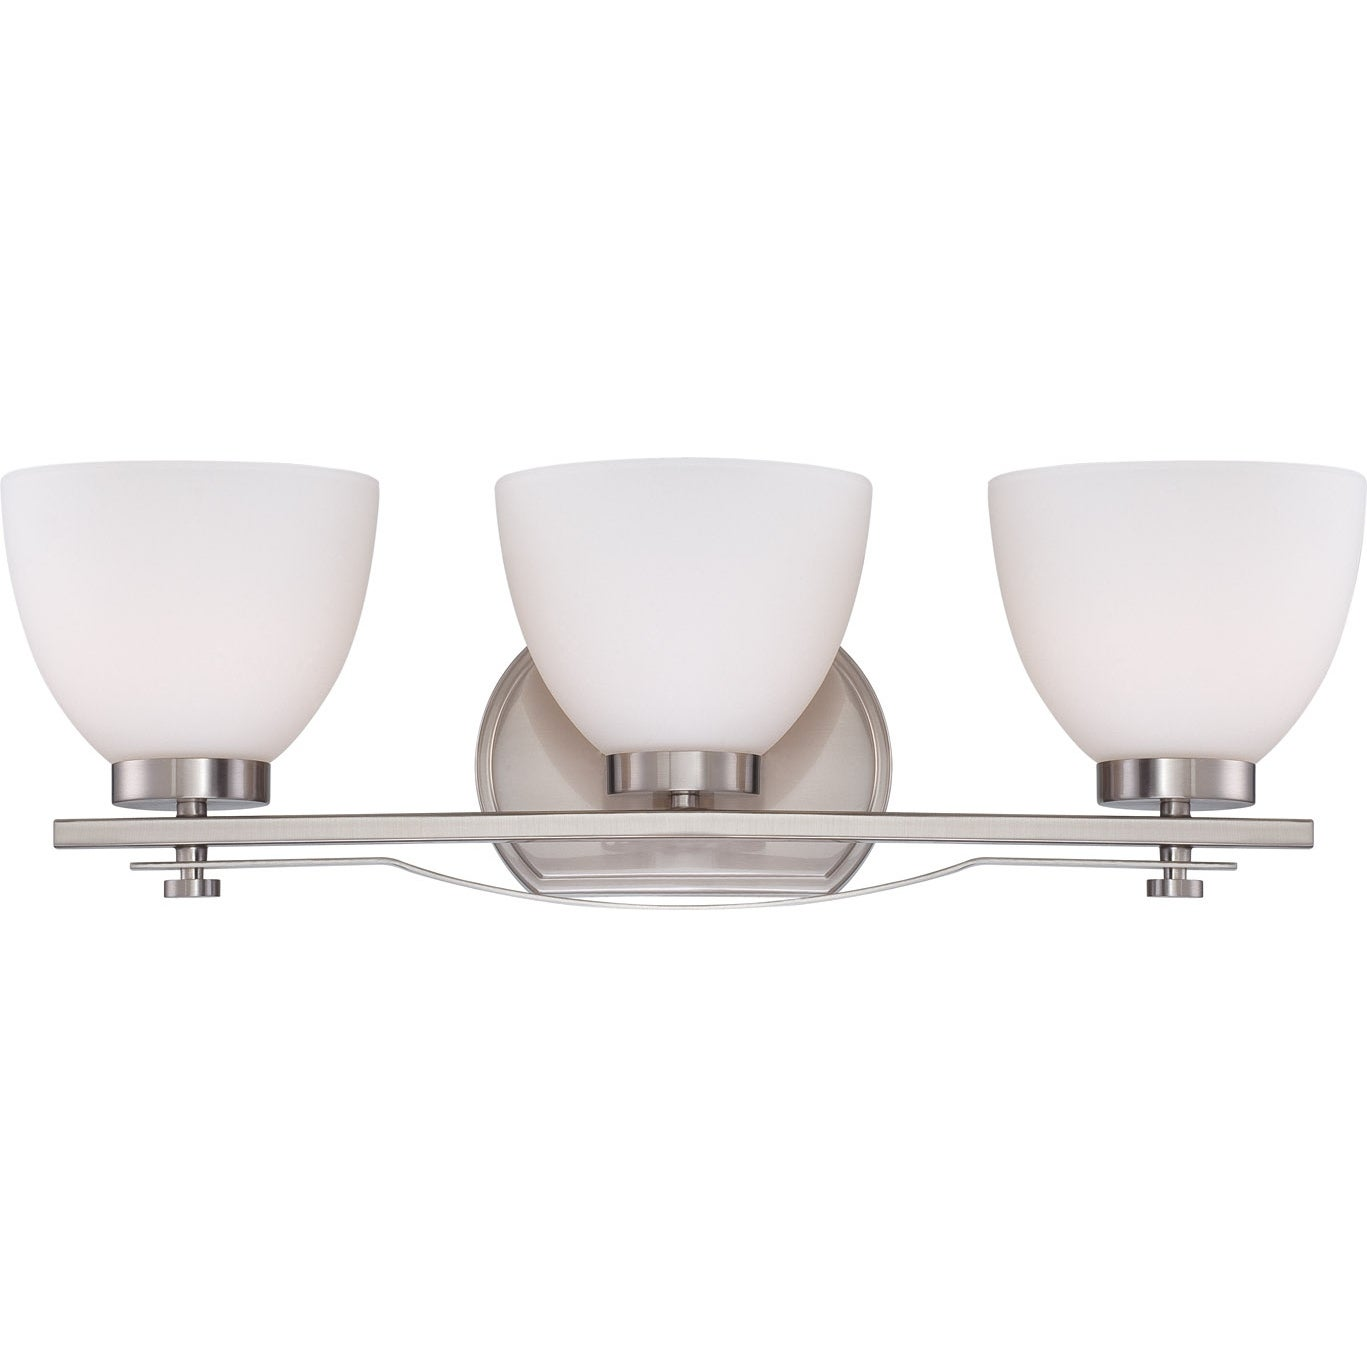 Nuvo Bentley 3-light Brushed Nickel Vanity Fixture